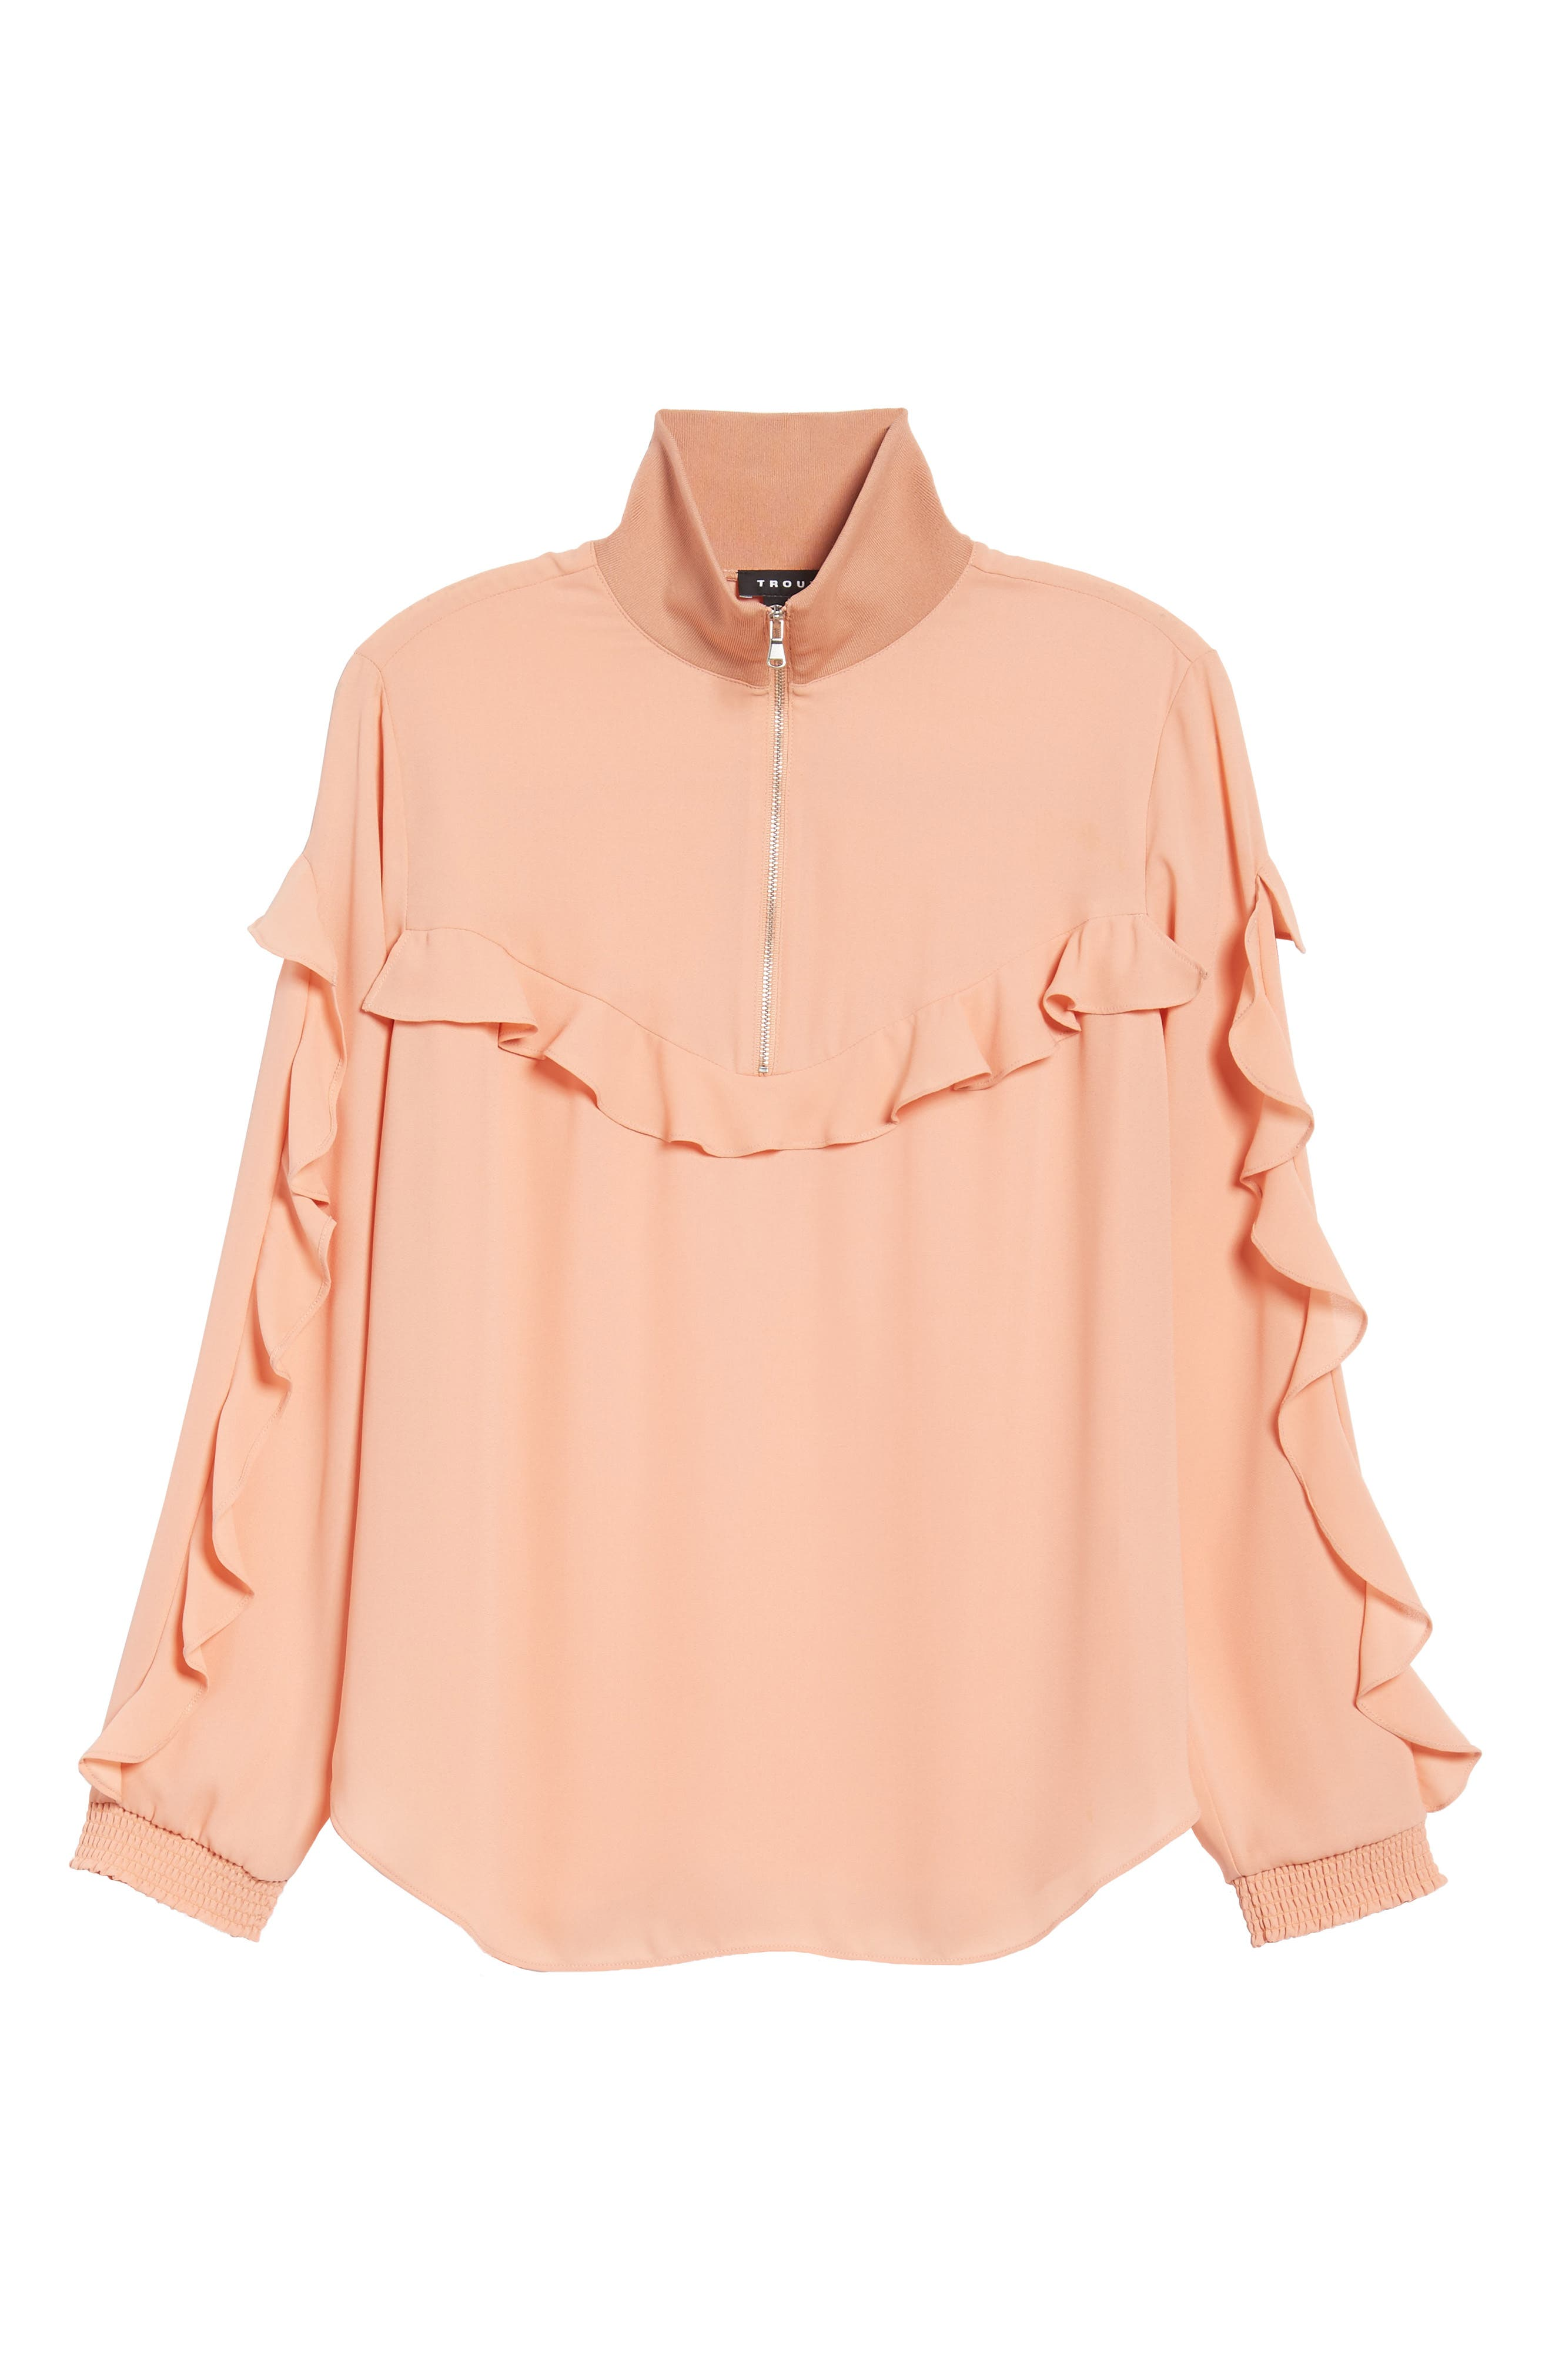 Ruffle Track Top,                             Alternate thumbnail 6, color,                             Coral Muted